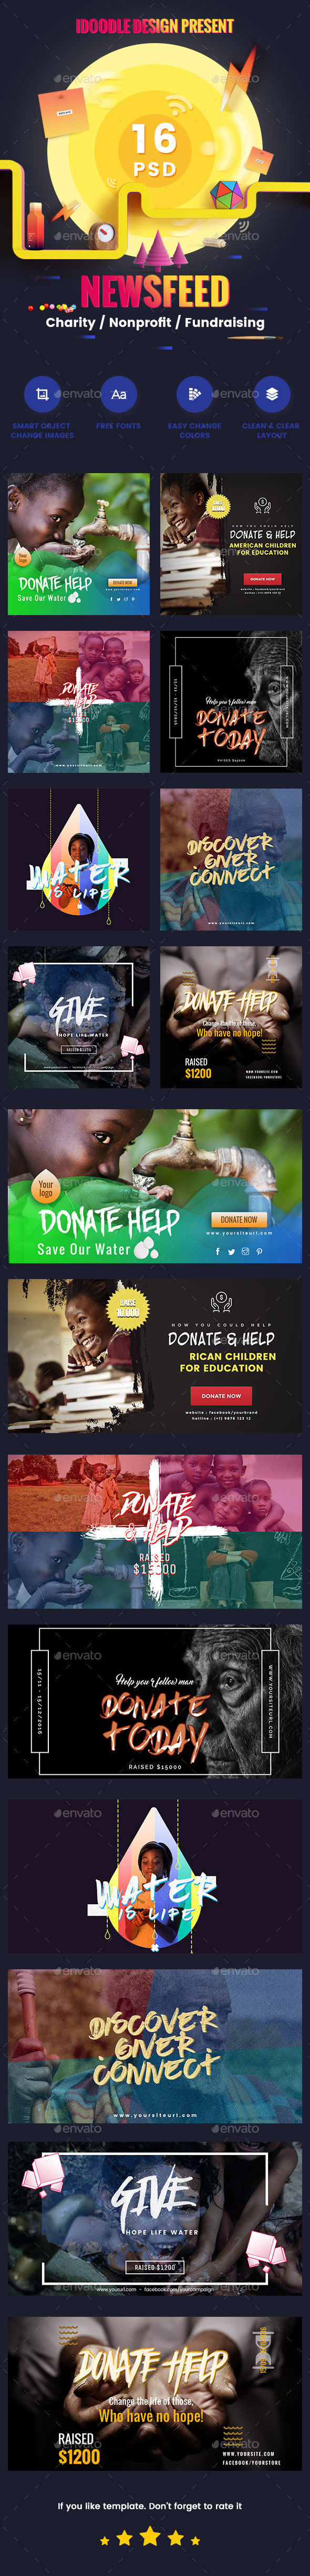 Charity / Nonprofit / Fundraising Newsfeed Ads - 16 PSD [02 Size Each] - Banners & Ads Web Elements